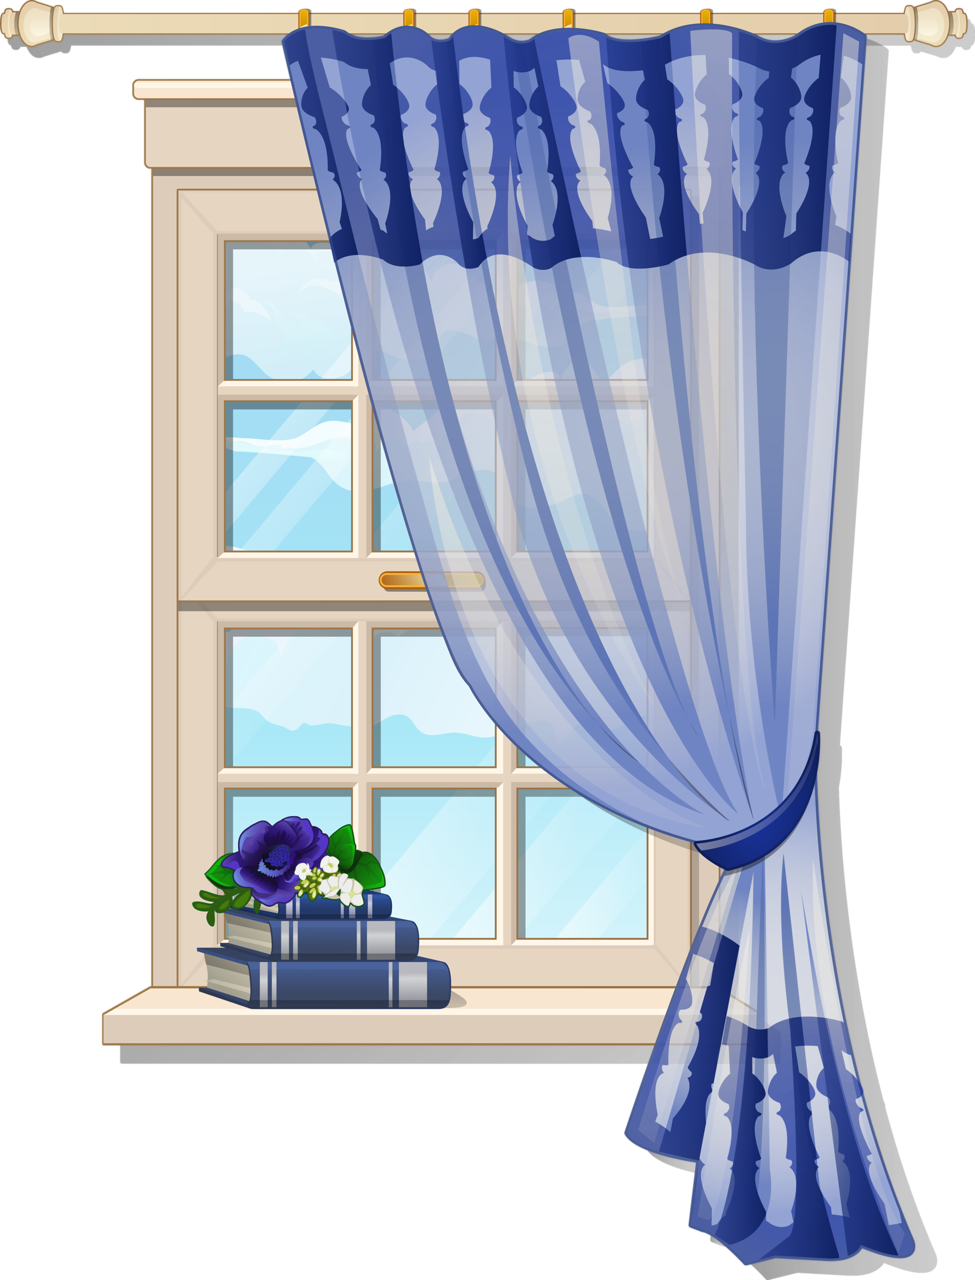 Furniture clipart gingerbread house window. With blue curtons for